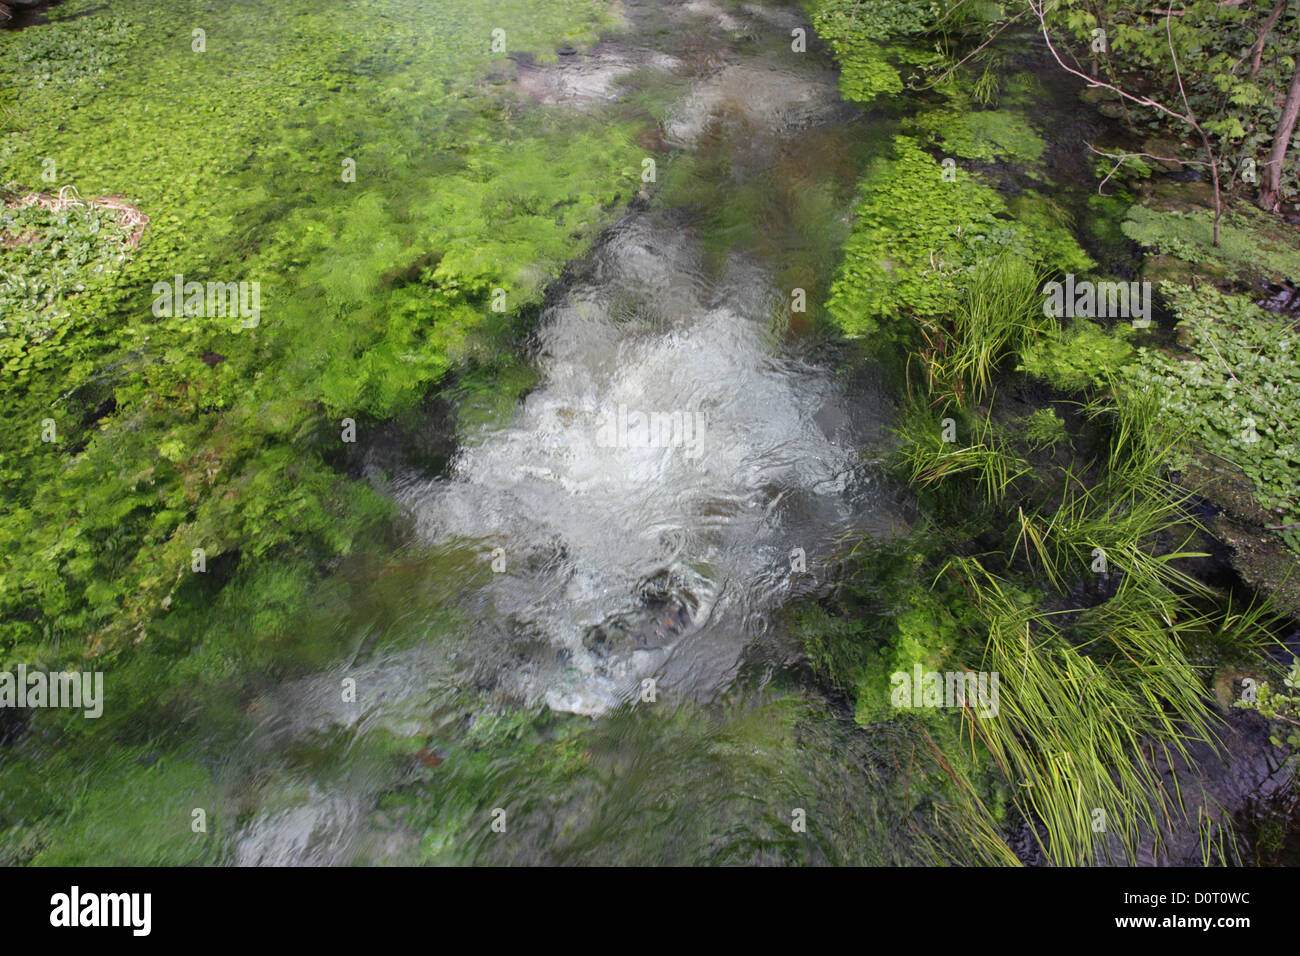 Natural Mineral Water Spring Water Source With Aquatic Vegetation Stock Photo